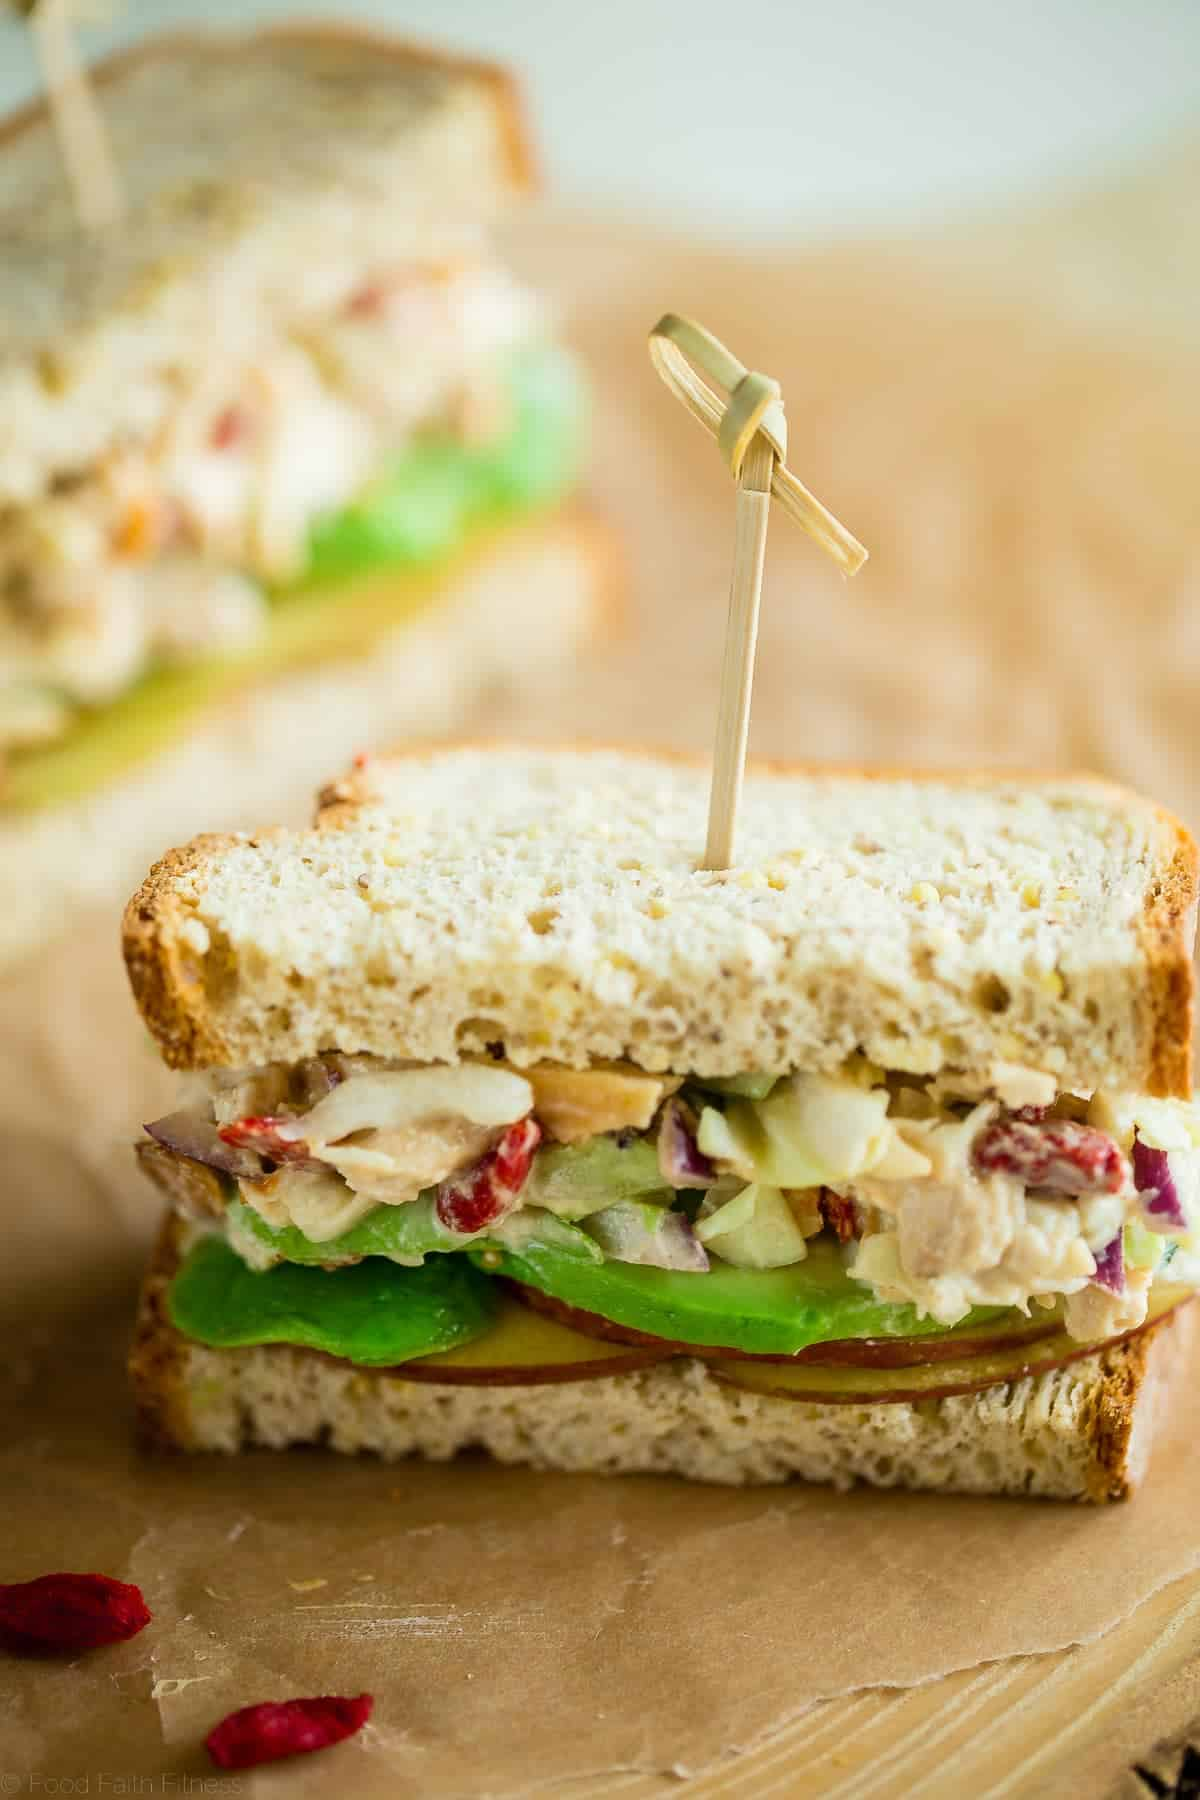 Gluten Free Superfood Greek Yogurt Chicken Salad Sandwich with Honey Mustard - This healthy sandwich is secretly packed with protein and superfoods! It's a quick and easy lunch, portable lunch that's great for kids or adults! | Foodfaithfitness.com | @FoodFaithFit